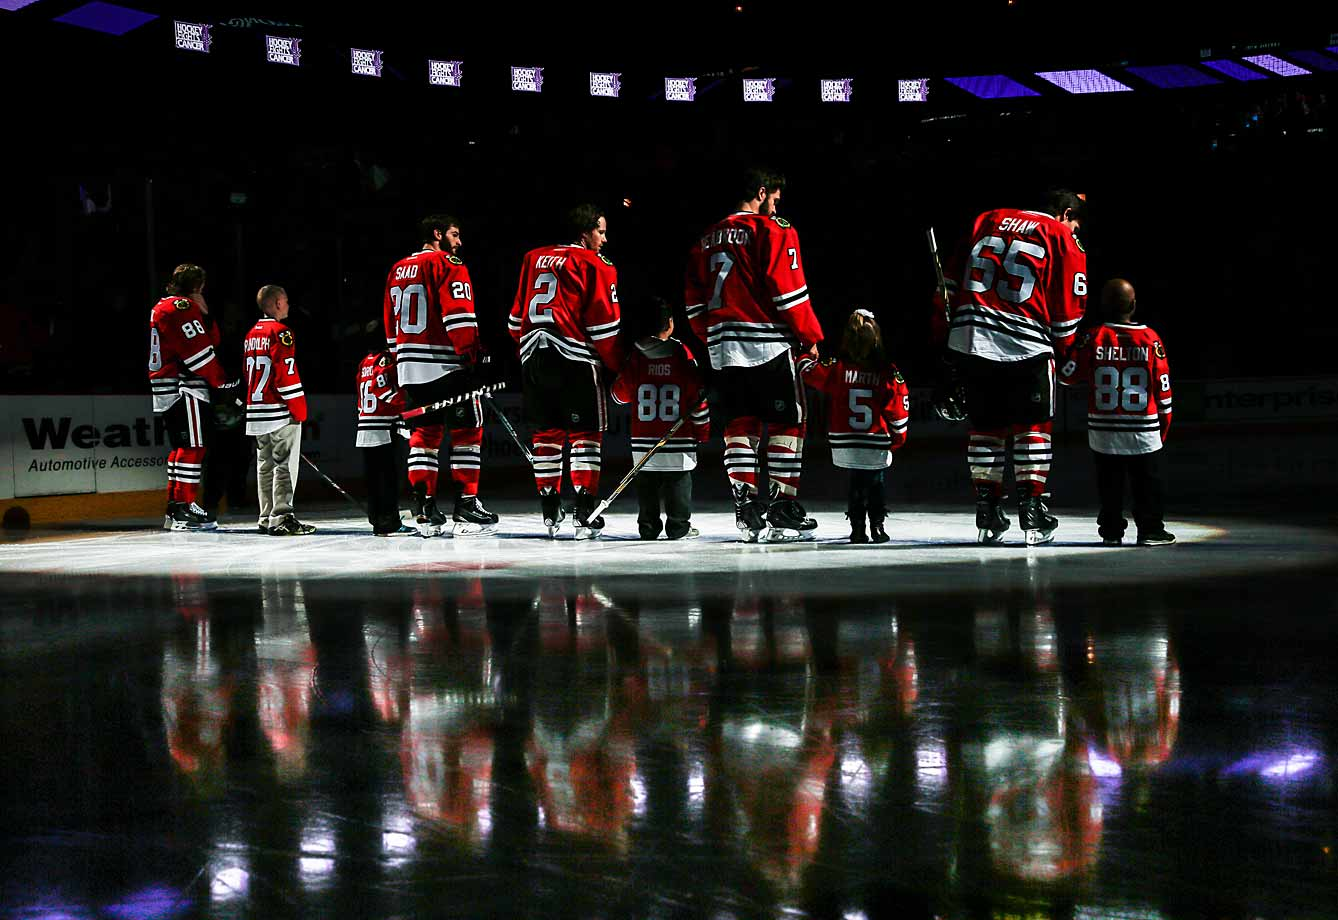 The Blackhawks and their linemates from the Make-a-Wish Foundation and Bear Necessities' Bears Hugs Program stood tall at Chicago's United Center before a game against the Ottawa Senators on Oct. 26, 2014.